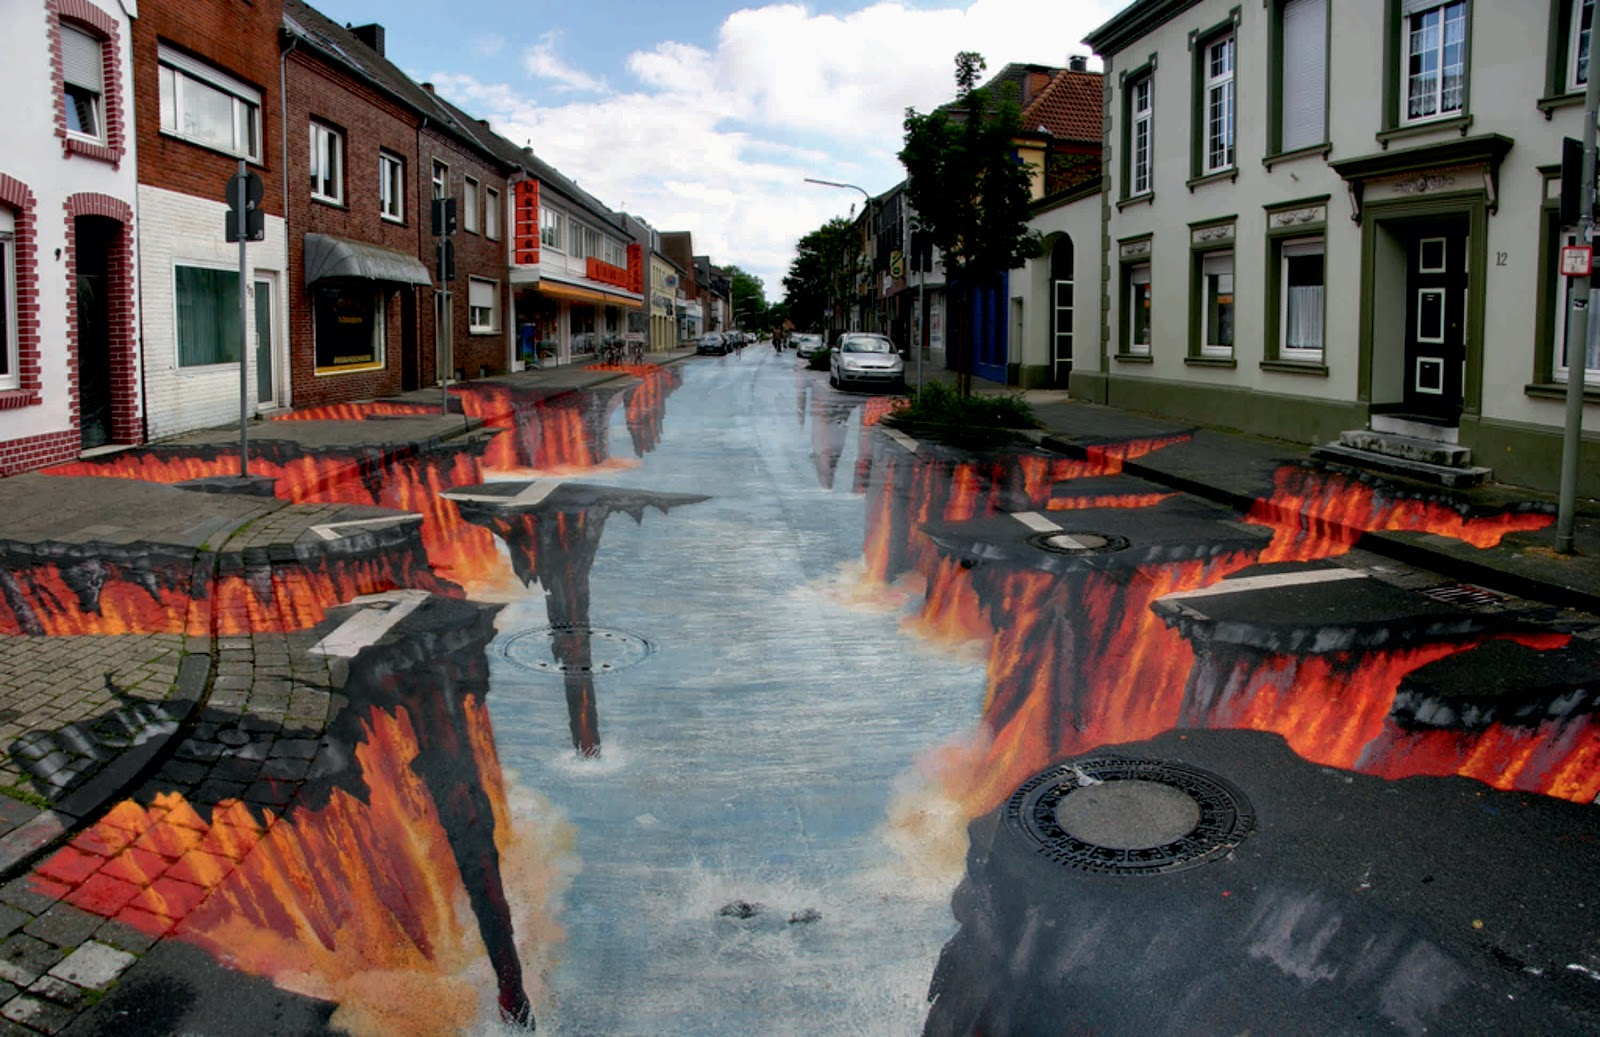 19 Best Images About Artist Brandon Miller On Pinterest: 3D STREET ART